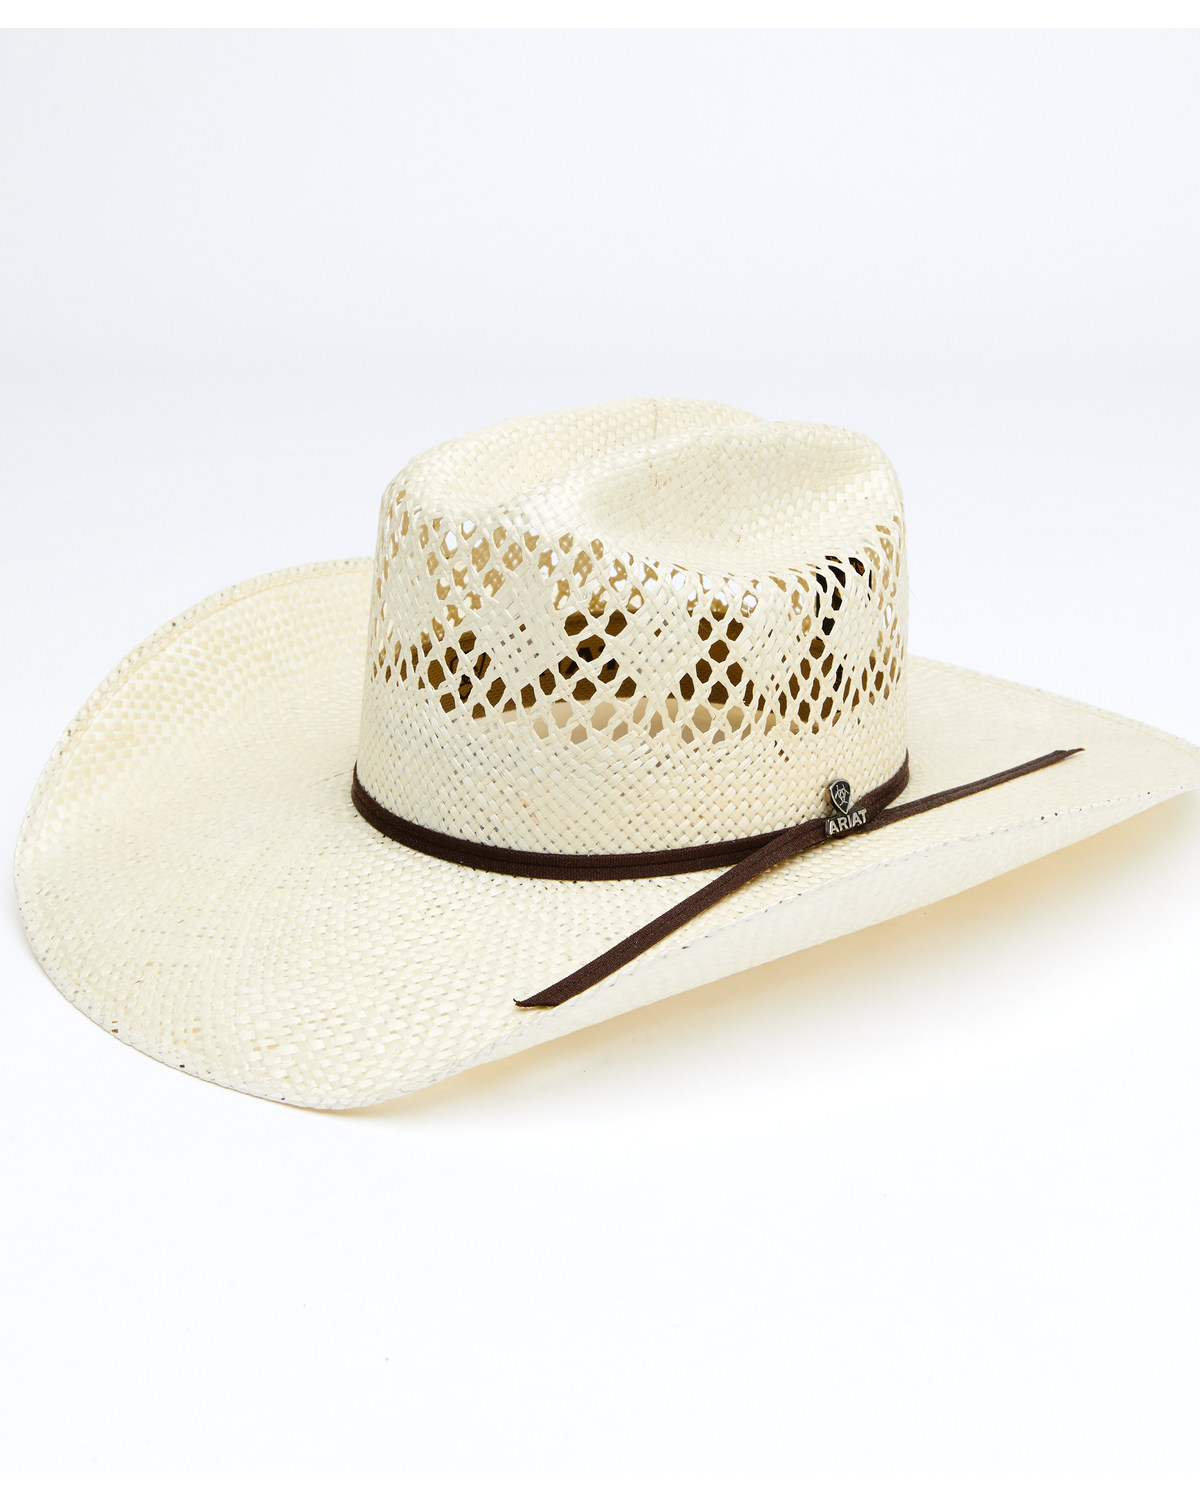 e780cda1b41c0 Ariat Men s Twisted Weave Straw Hat